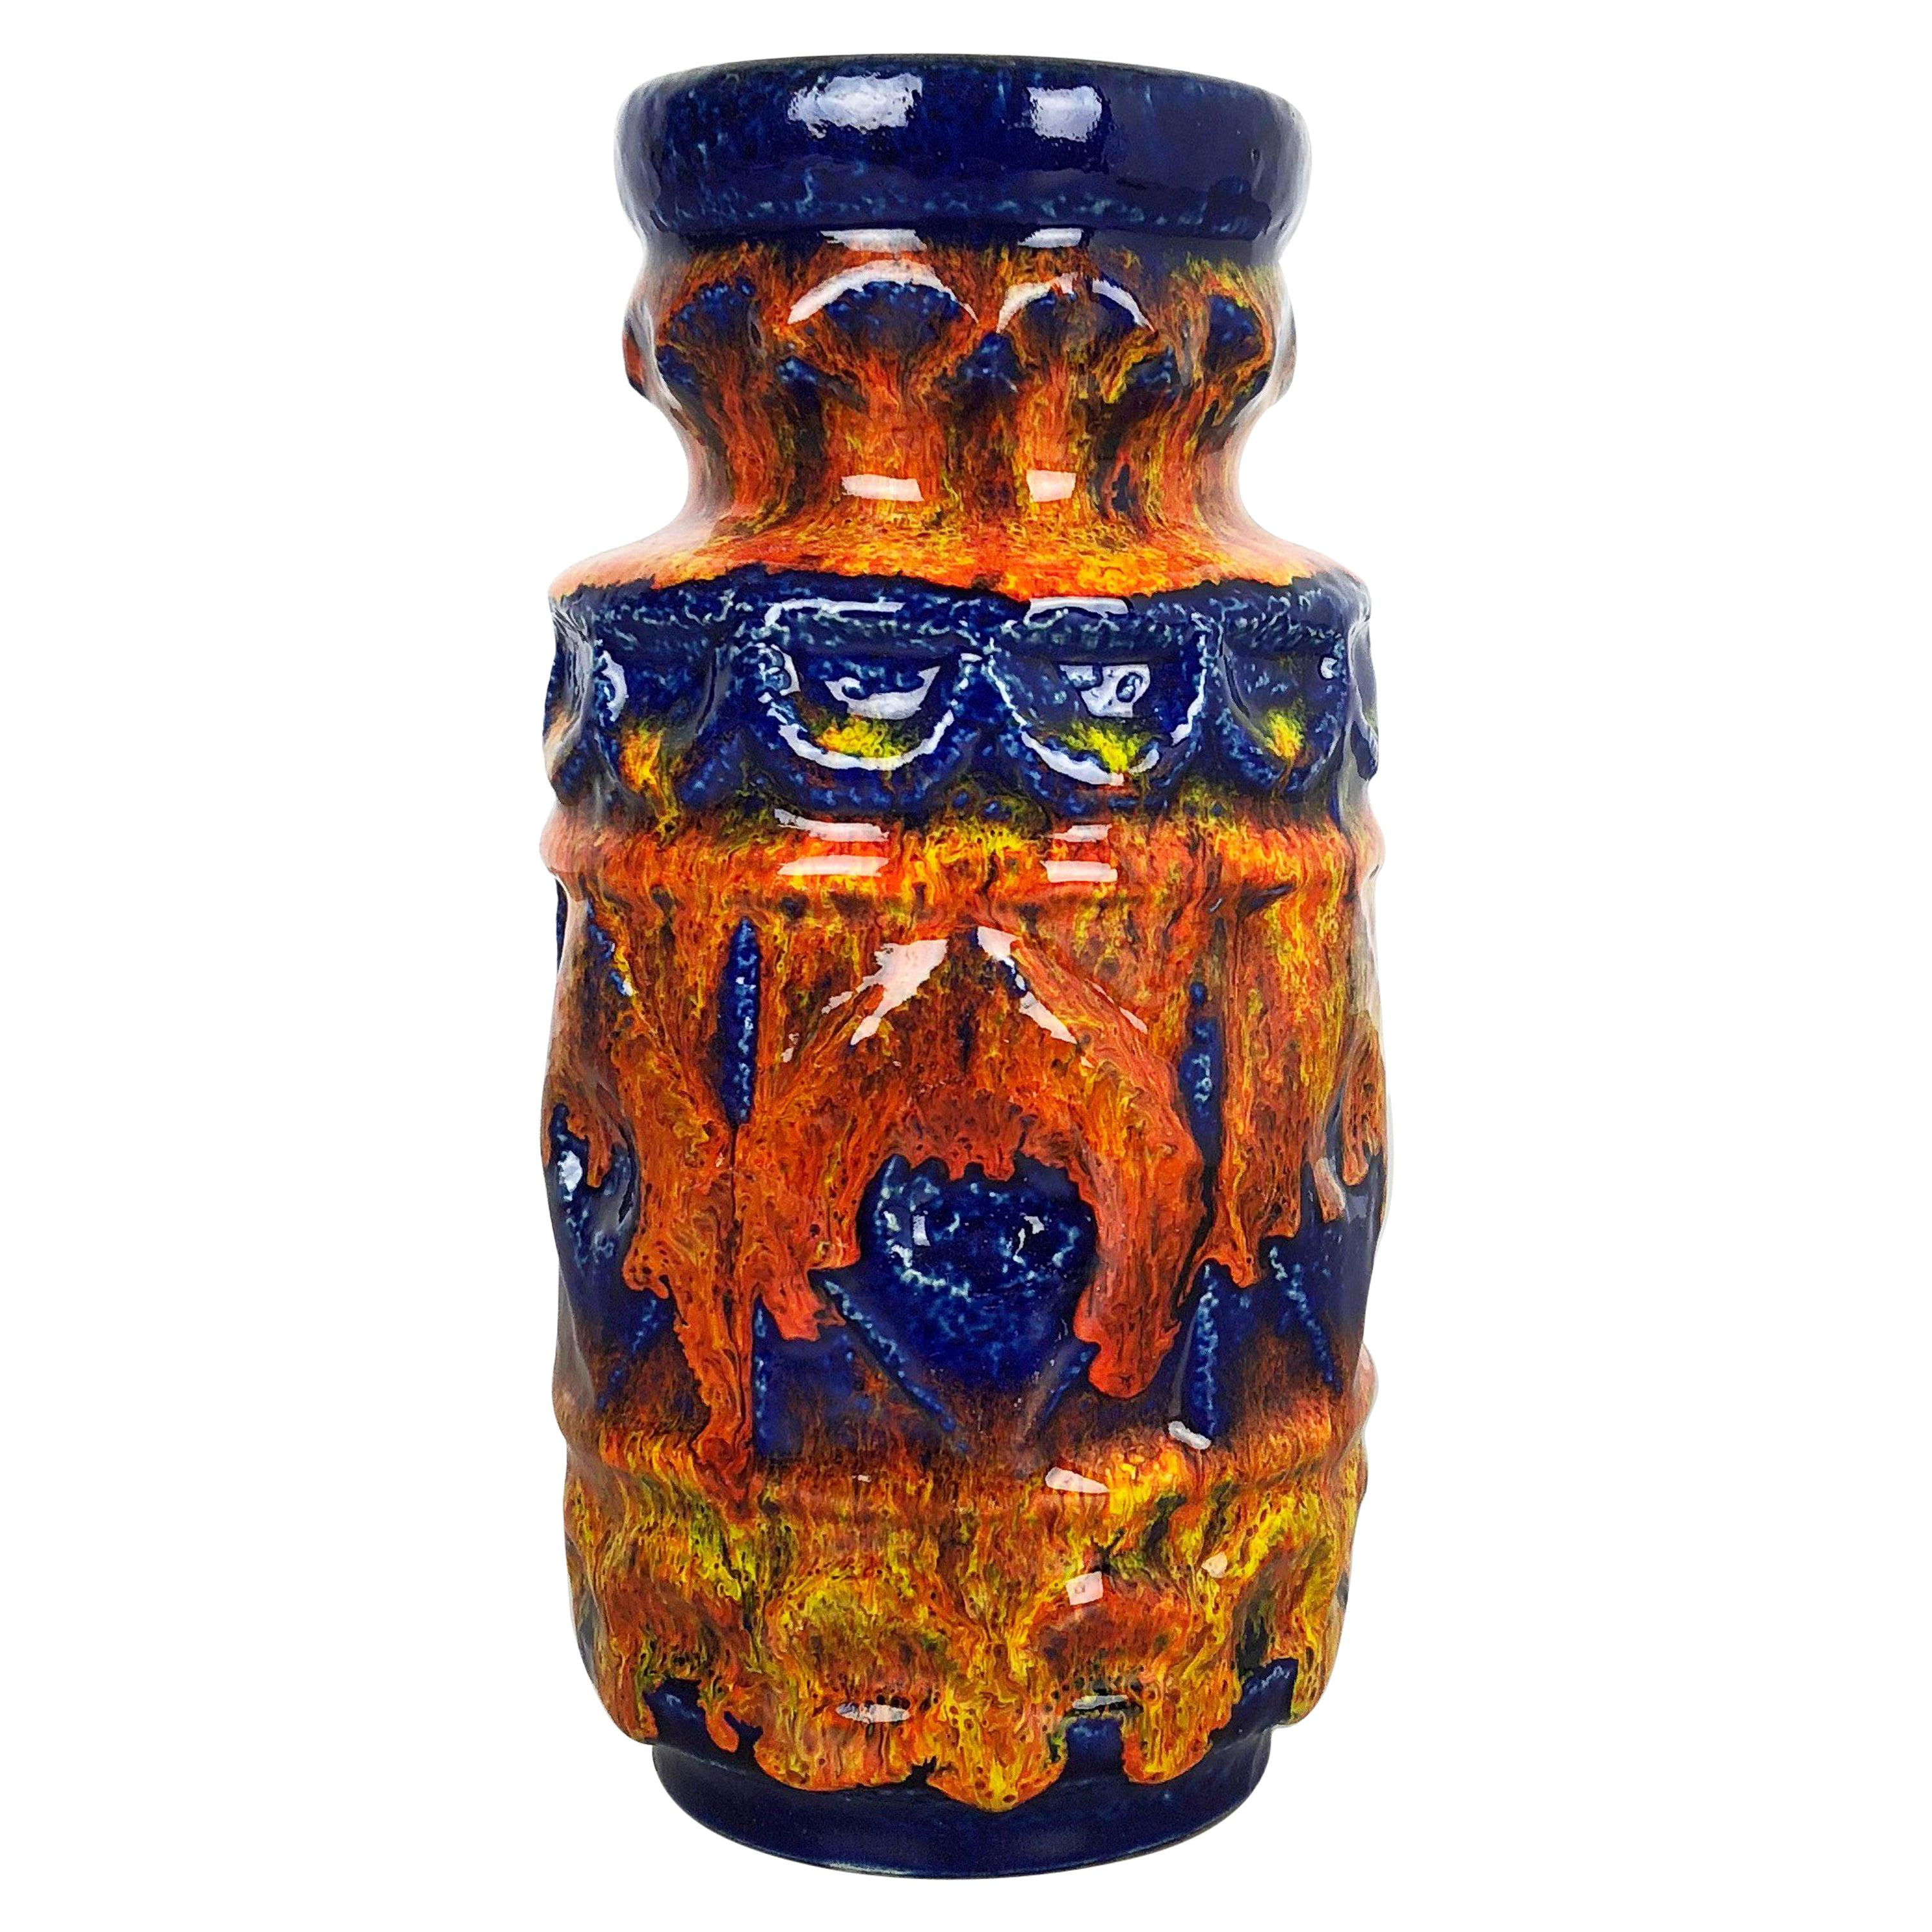 Super Colorful Fat Lava Pottery Vase by Bay Ceramics, Germany, 1950s